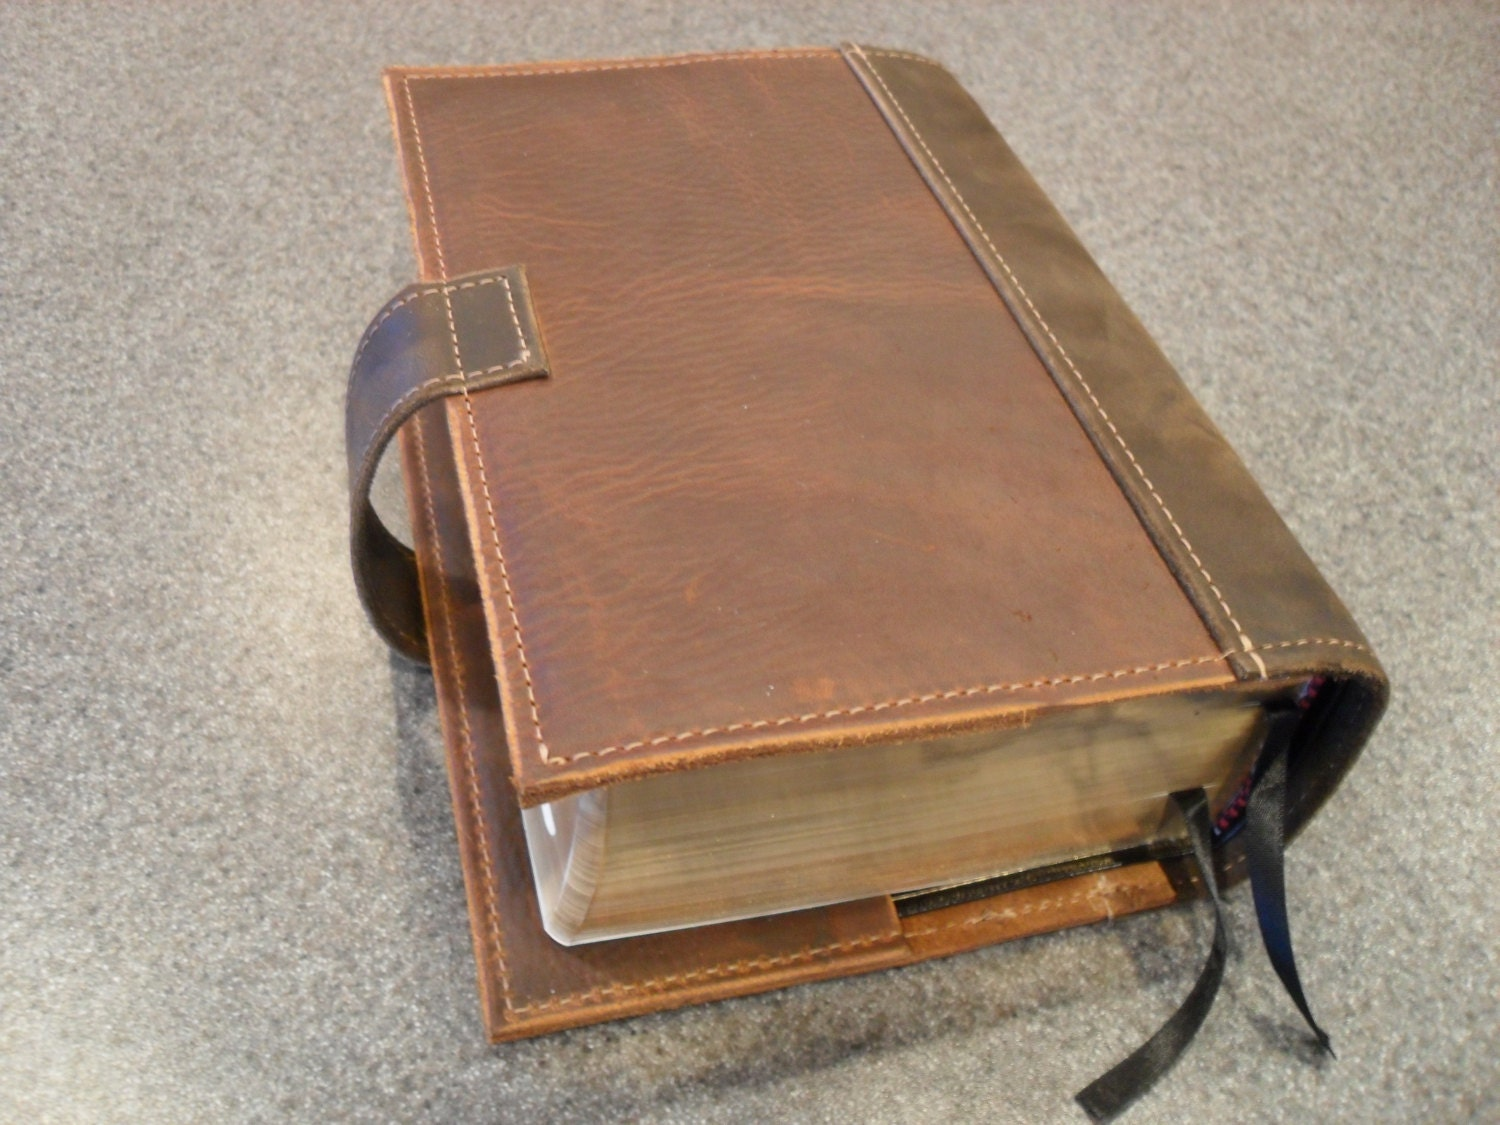 Vintage Leather Look Jeremiah Verse Bible Book Cover Large: Leather LDS Scripture Case The Quad